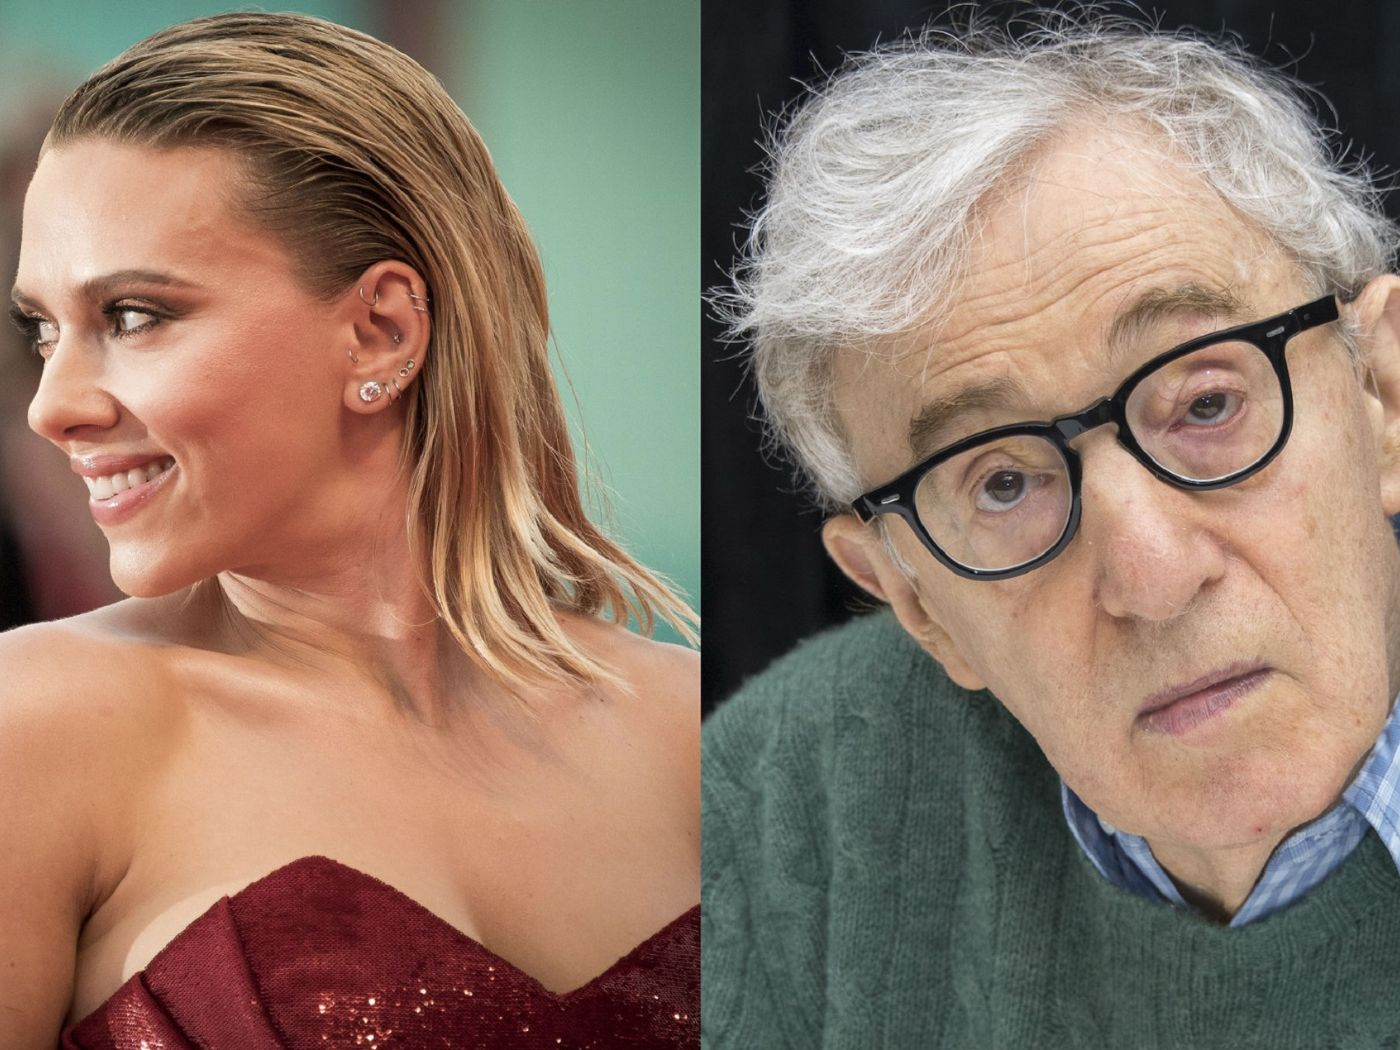 Scarlett Johansson clarifies her comments defending Woody Allen - NME Music News, Reviews, Videos, Galleries, Tickets and Blogs | NME.COM